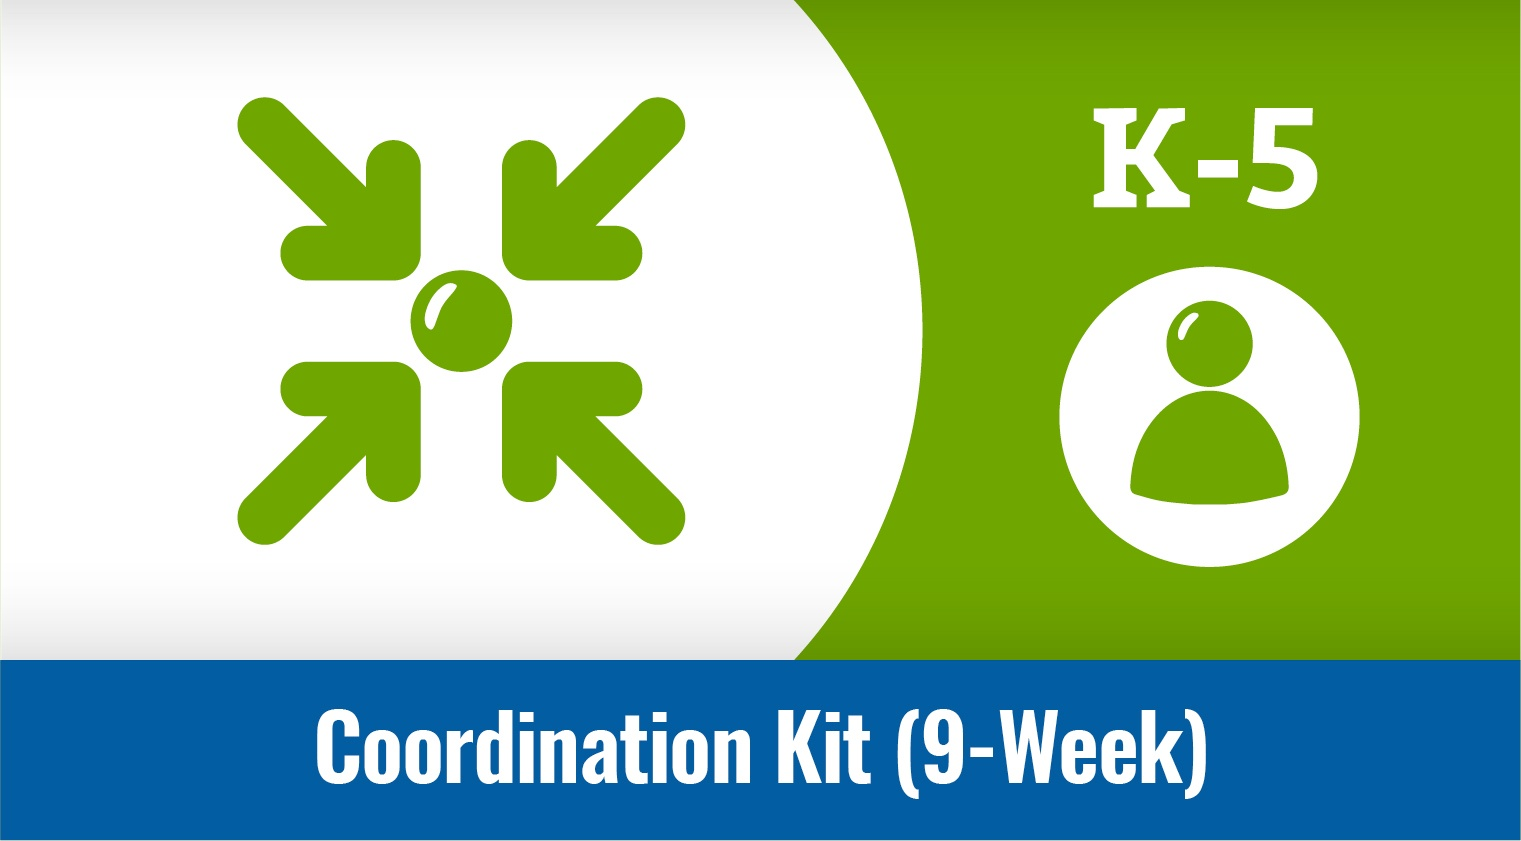 CATCH Coordination Kit (K-5) 9-Week